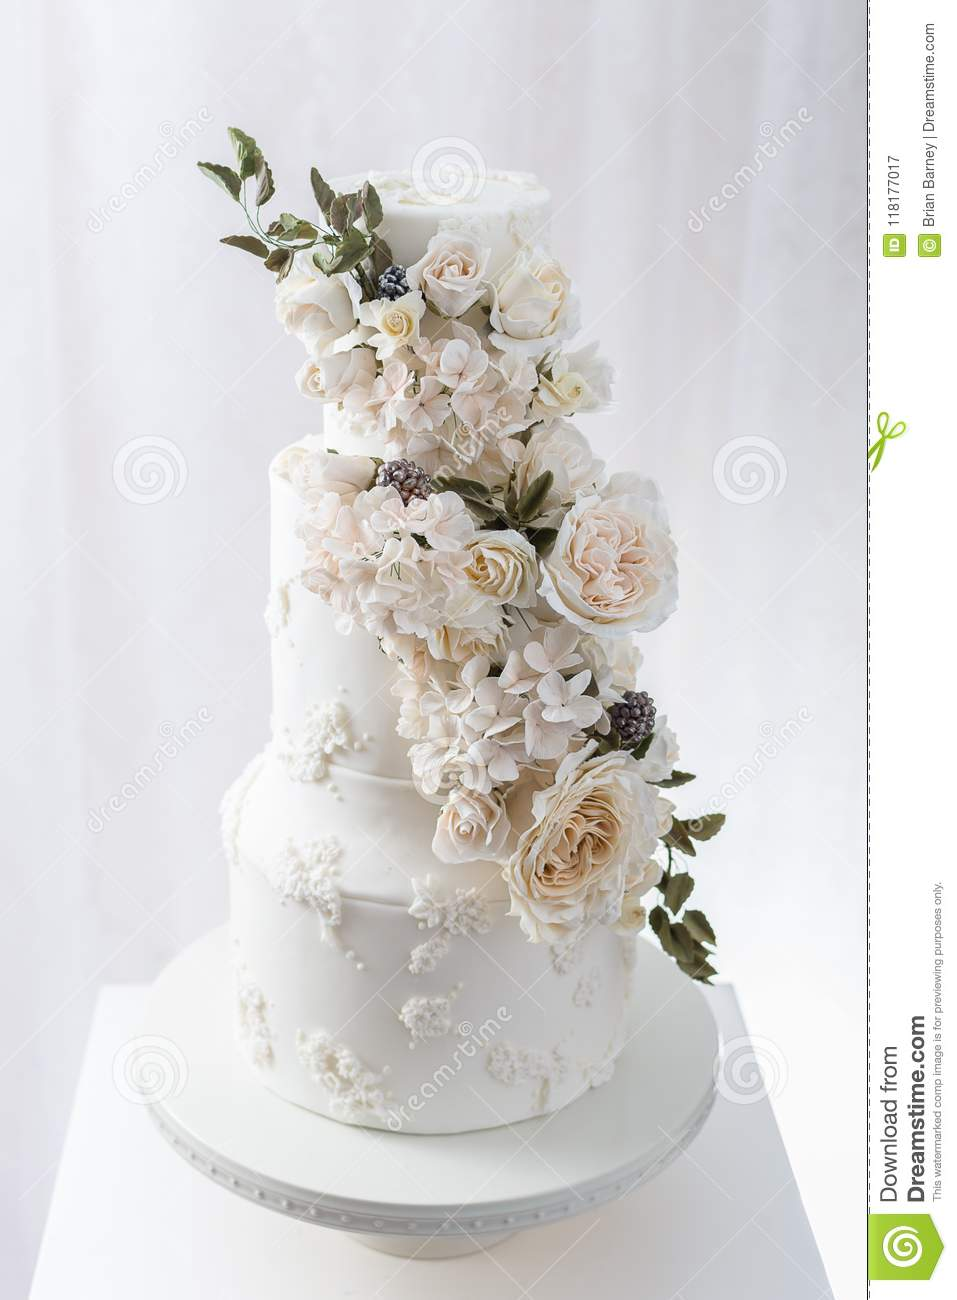 Tiered Wedding Cake With Edible Flowers Stock Image - Image of ...